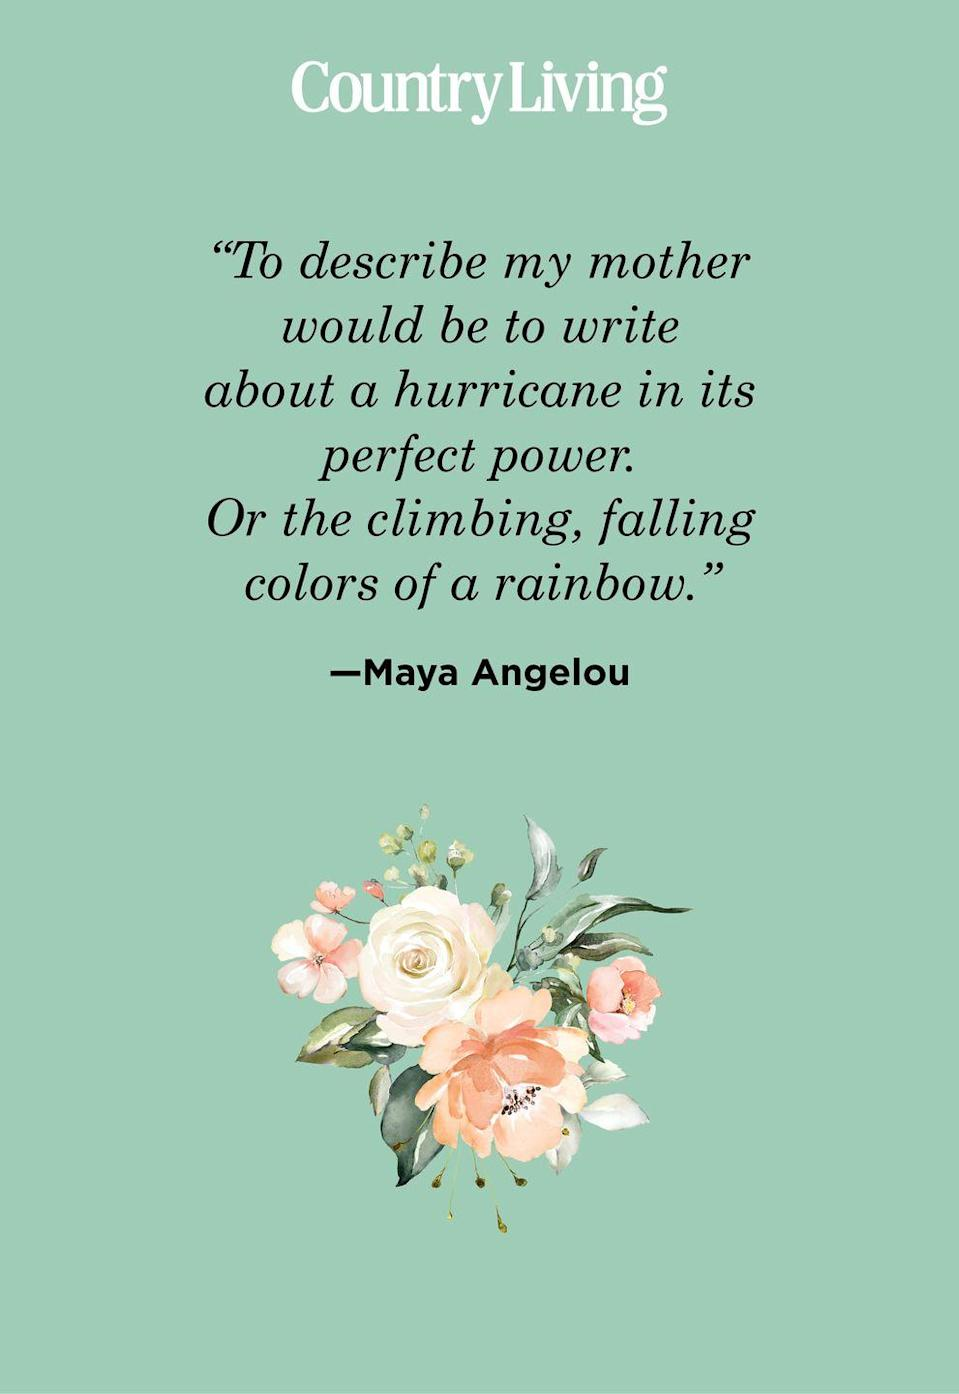 "<p>""To describe my mother would be to write about a hurricane in its perfect power. Or the climbing, falling colors of a rainbow."" </p>"